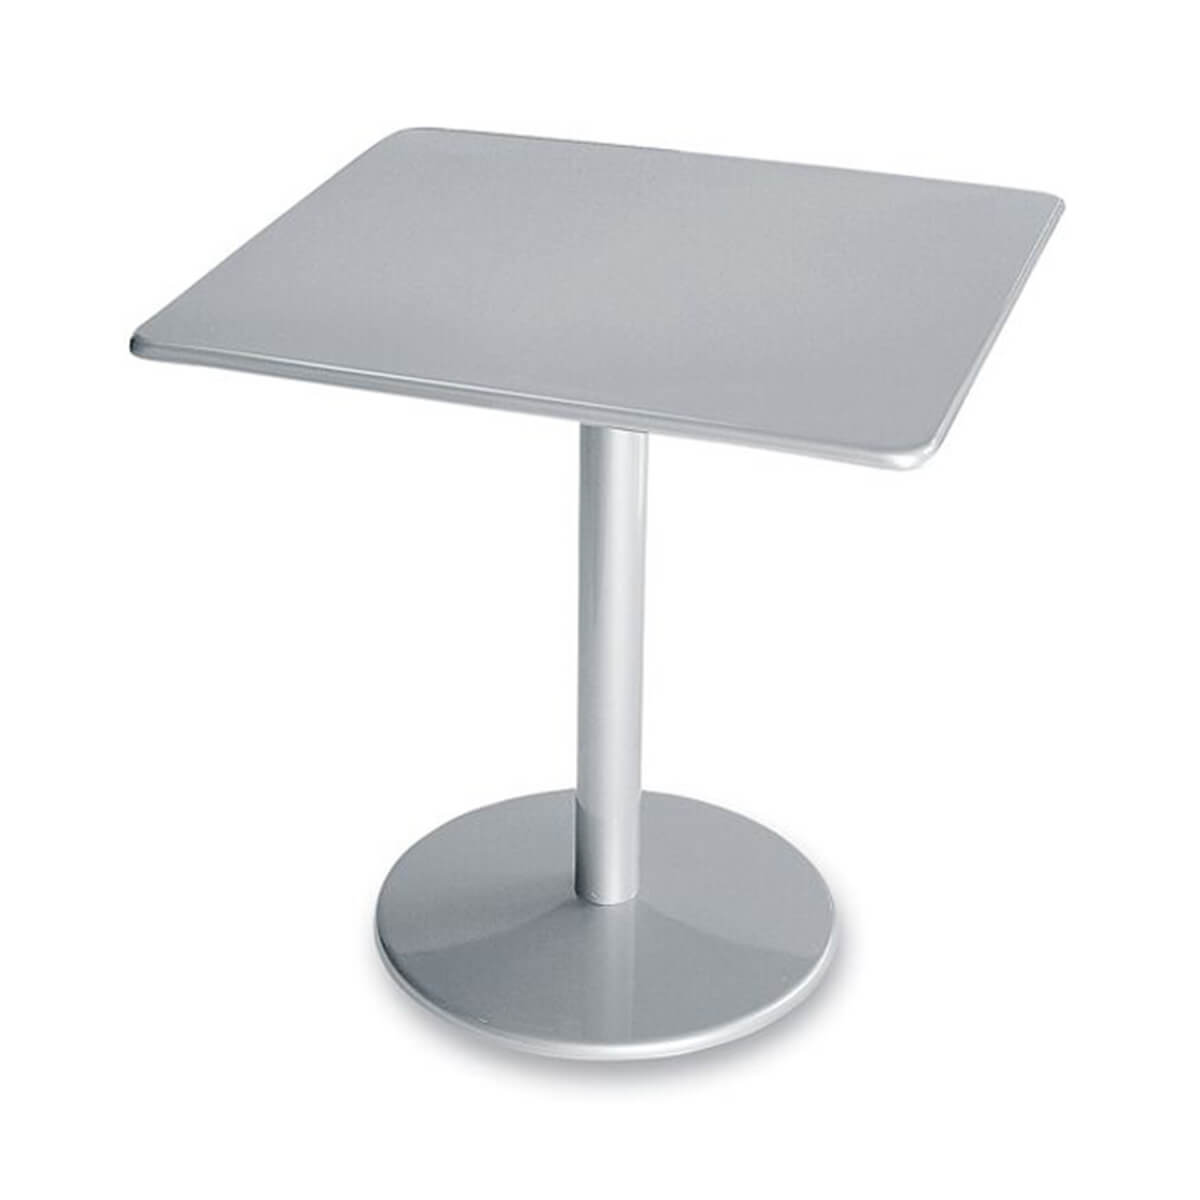 All Commercial Tables